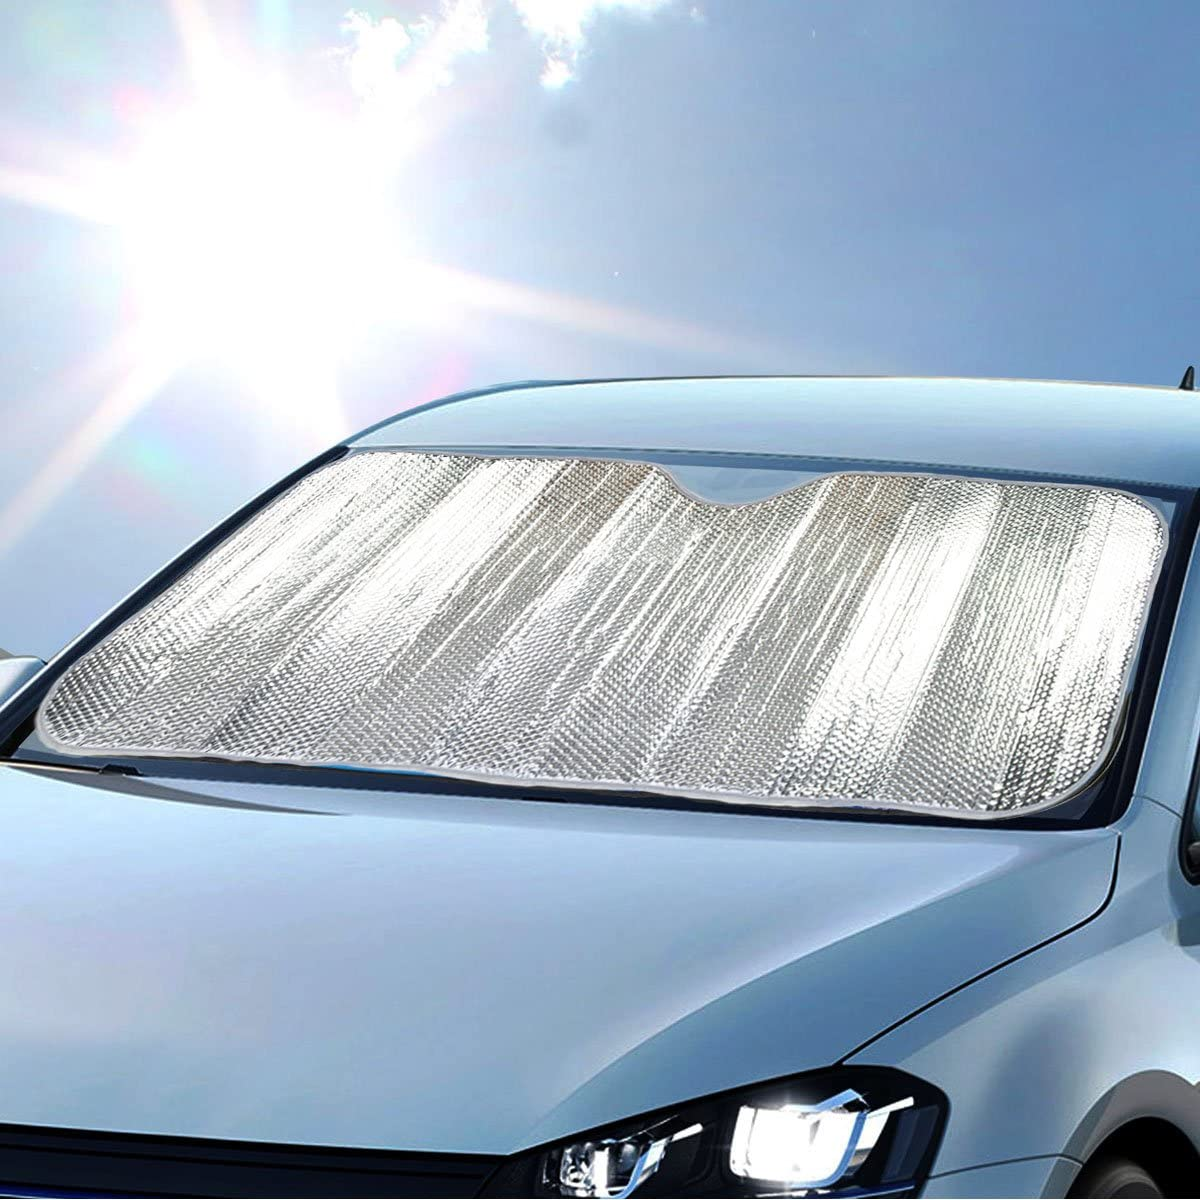 Double Bubble Front Windshield Shade Window Shade- Accordion Folding Auto Sunshade for Car Truck SUV-Blocks UV Rays Sun Visor Protector-Keeps Your Vehicle Cool